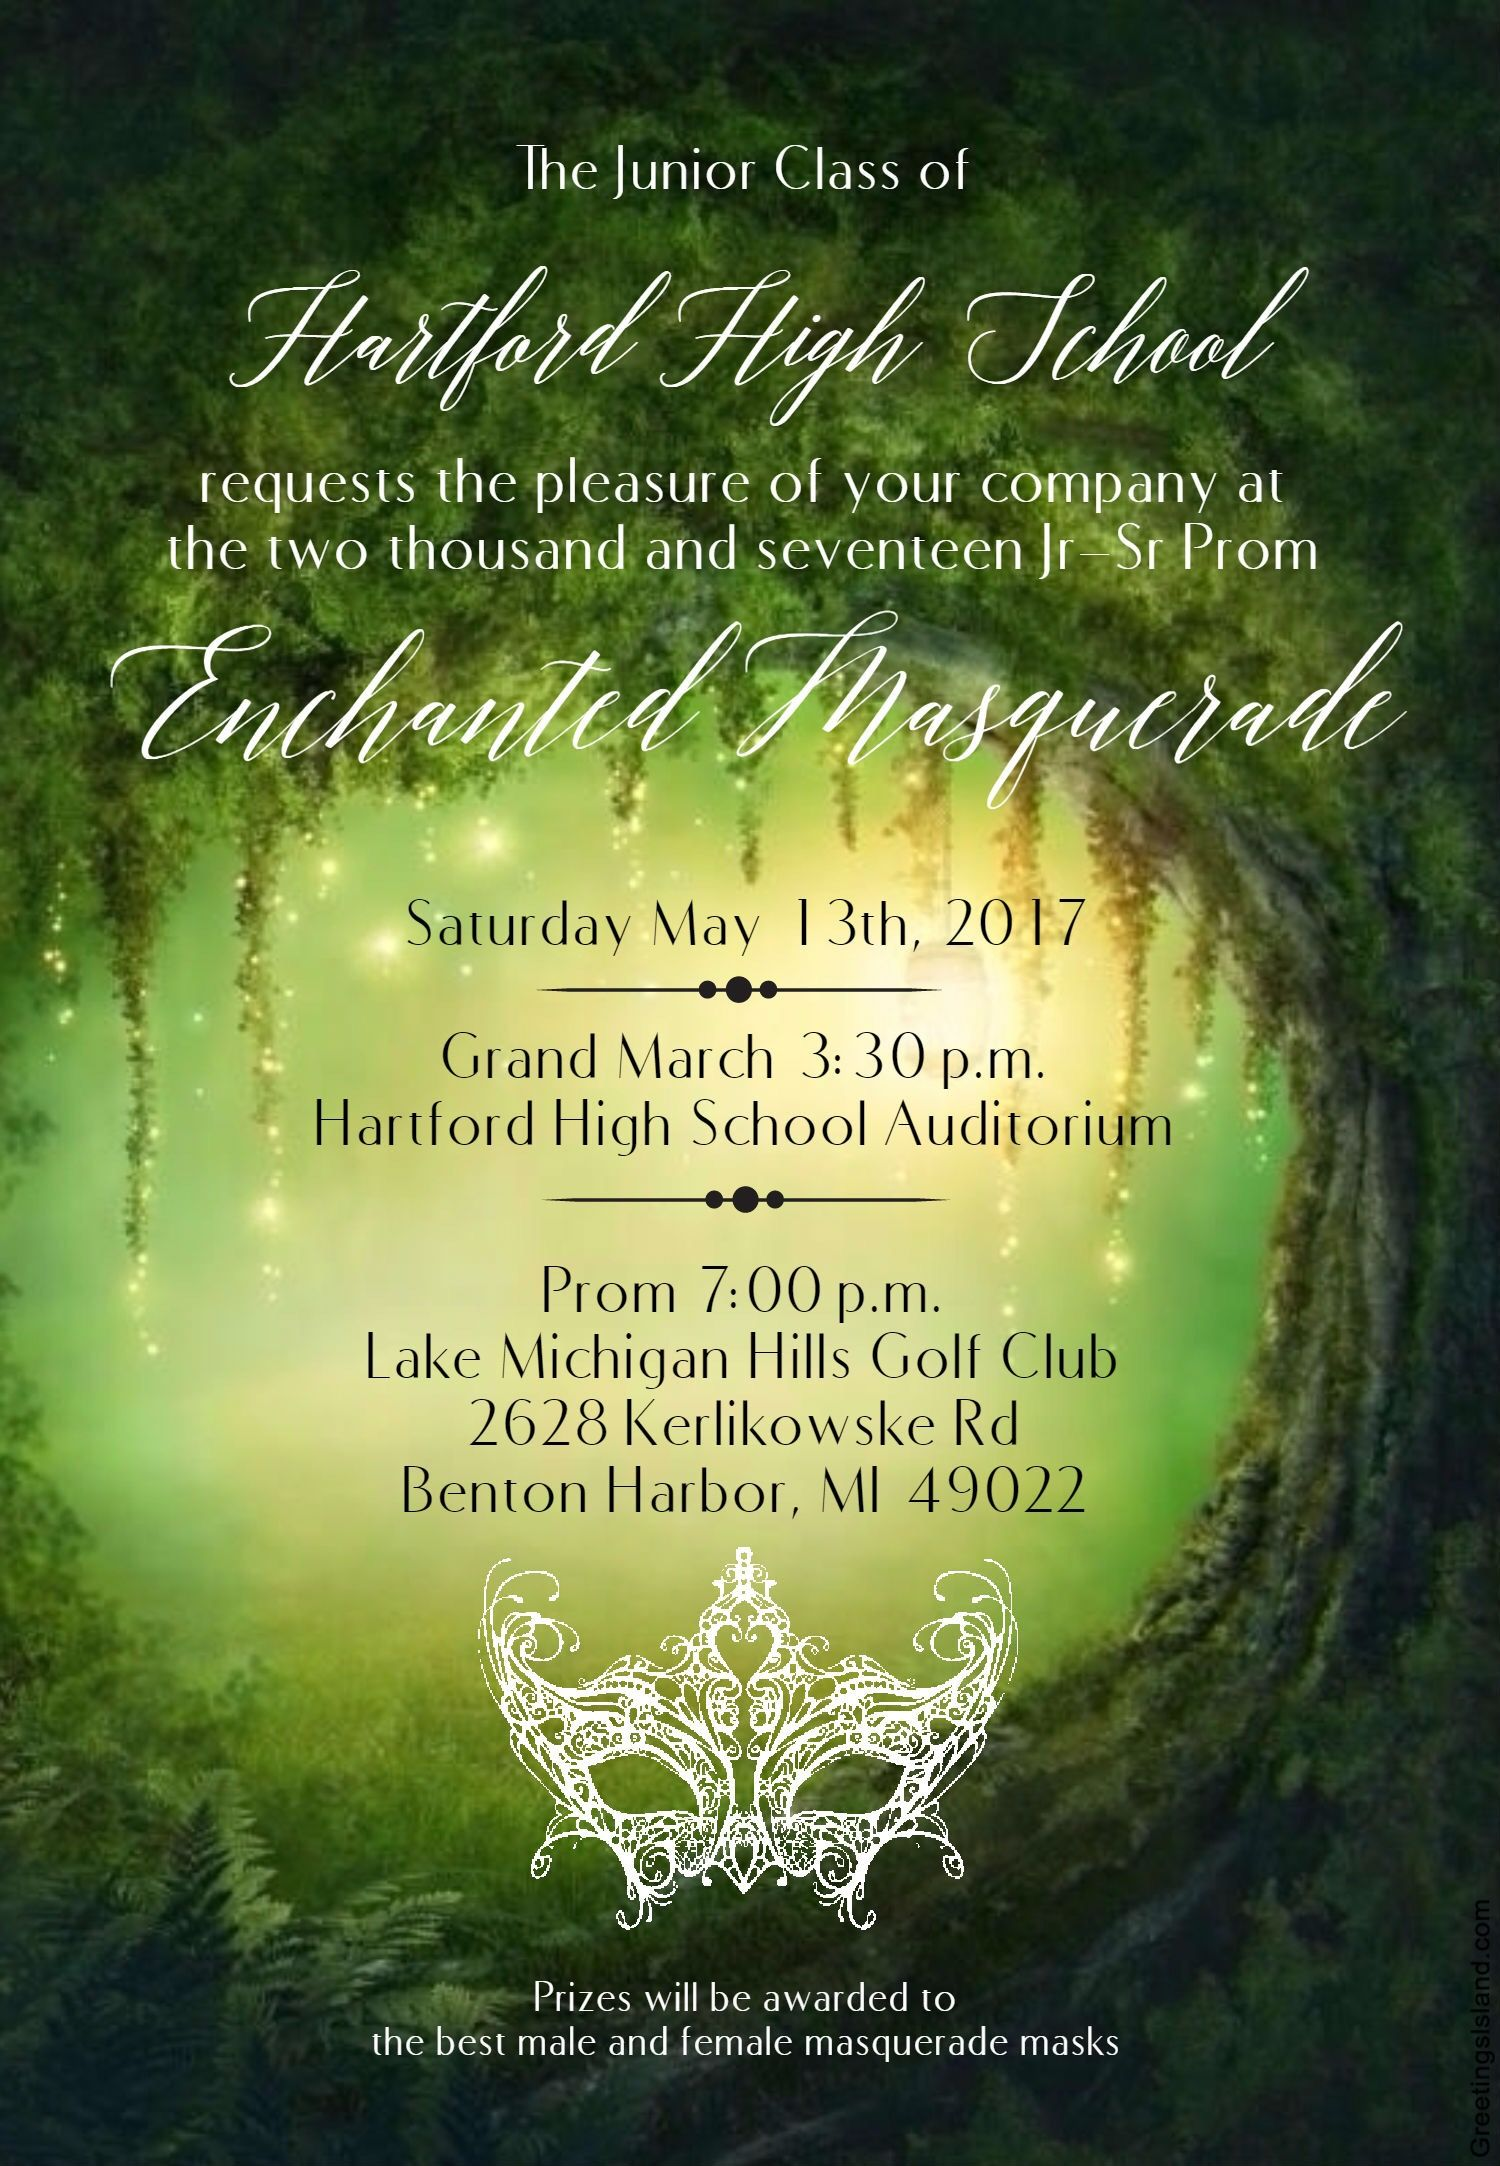 Enchanted Masquerade Prom Invitation Made On Www.greetingsisland.com